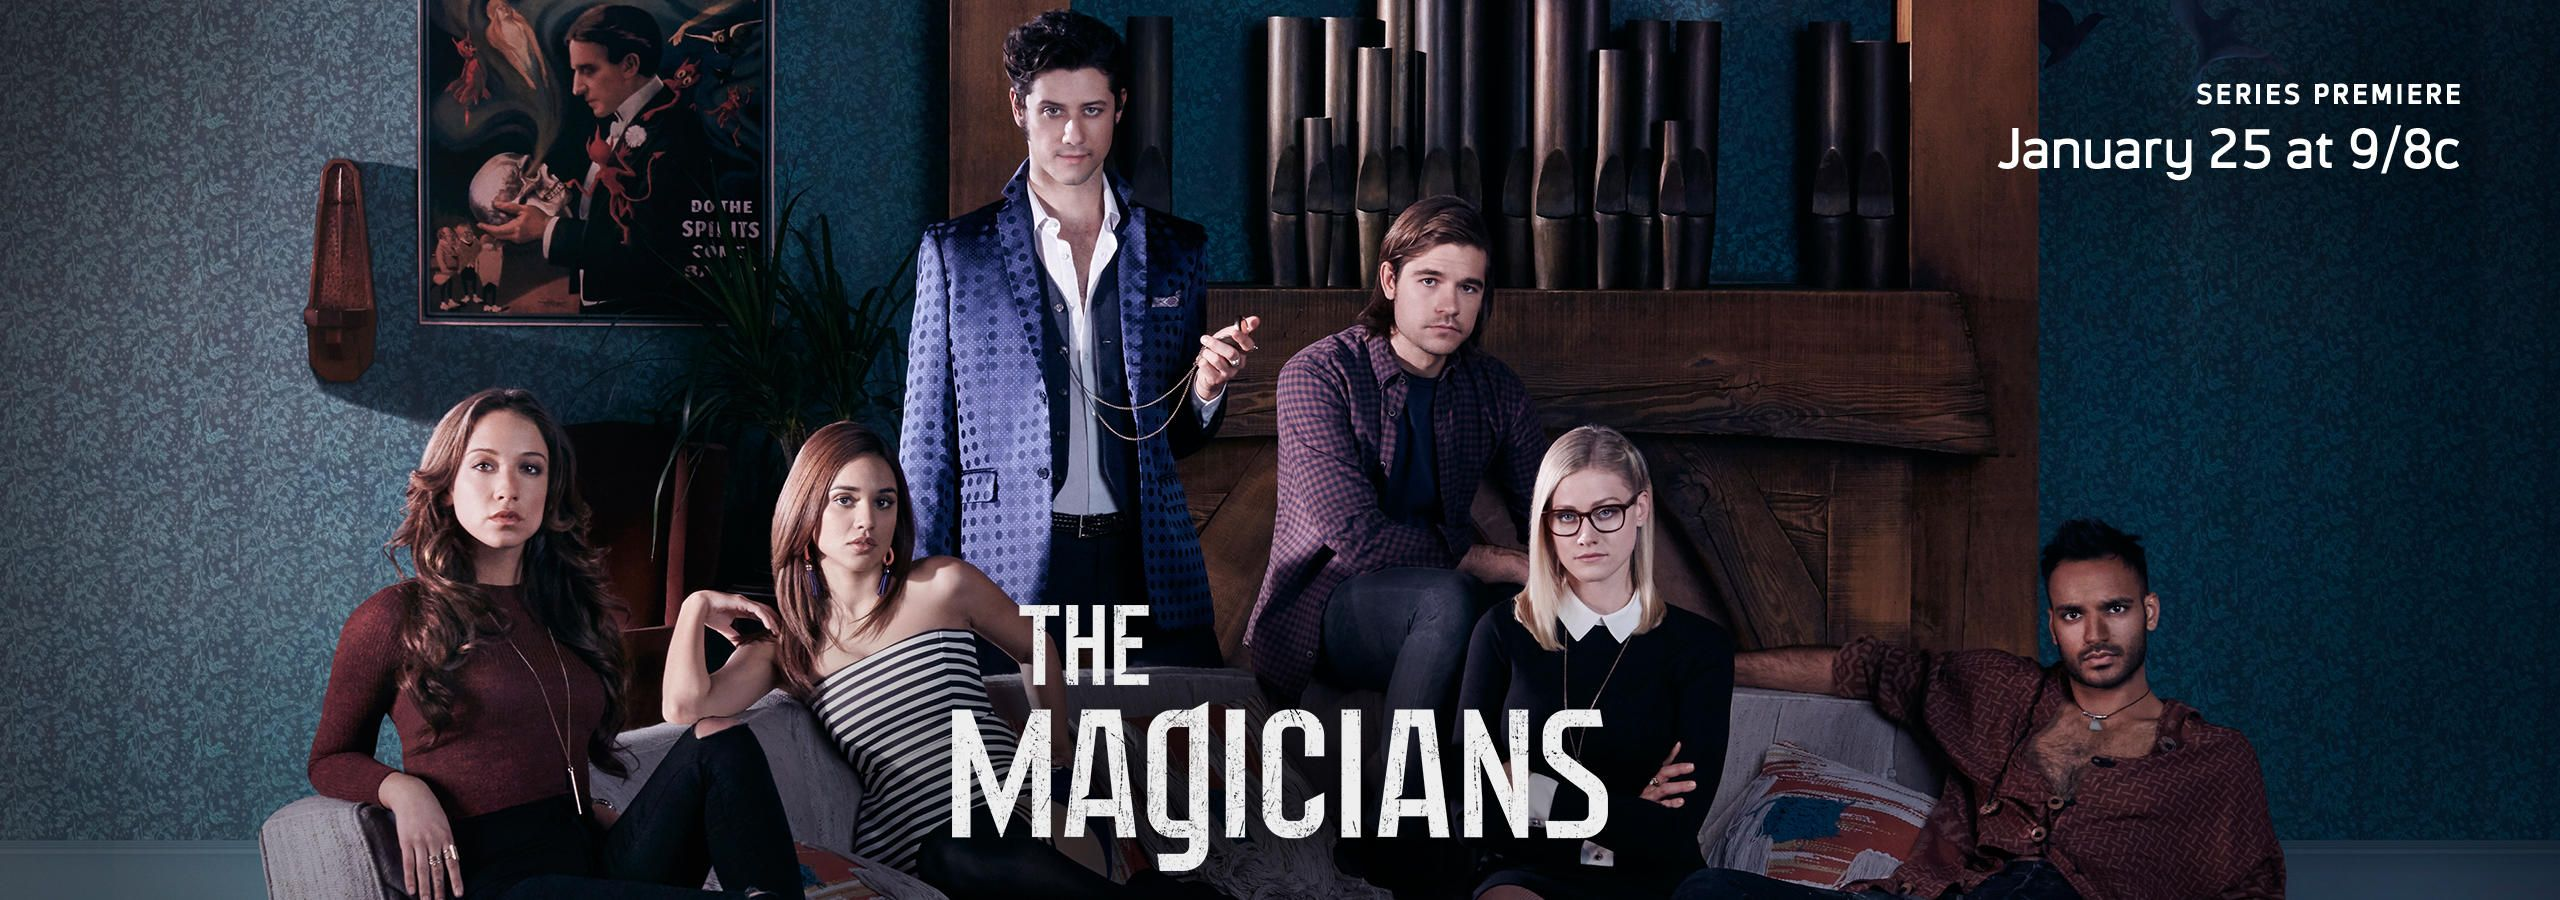 This show is amazing. I'm hooked!!